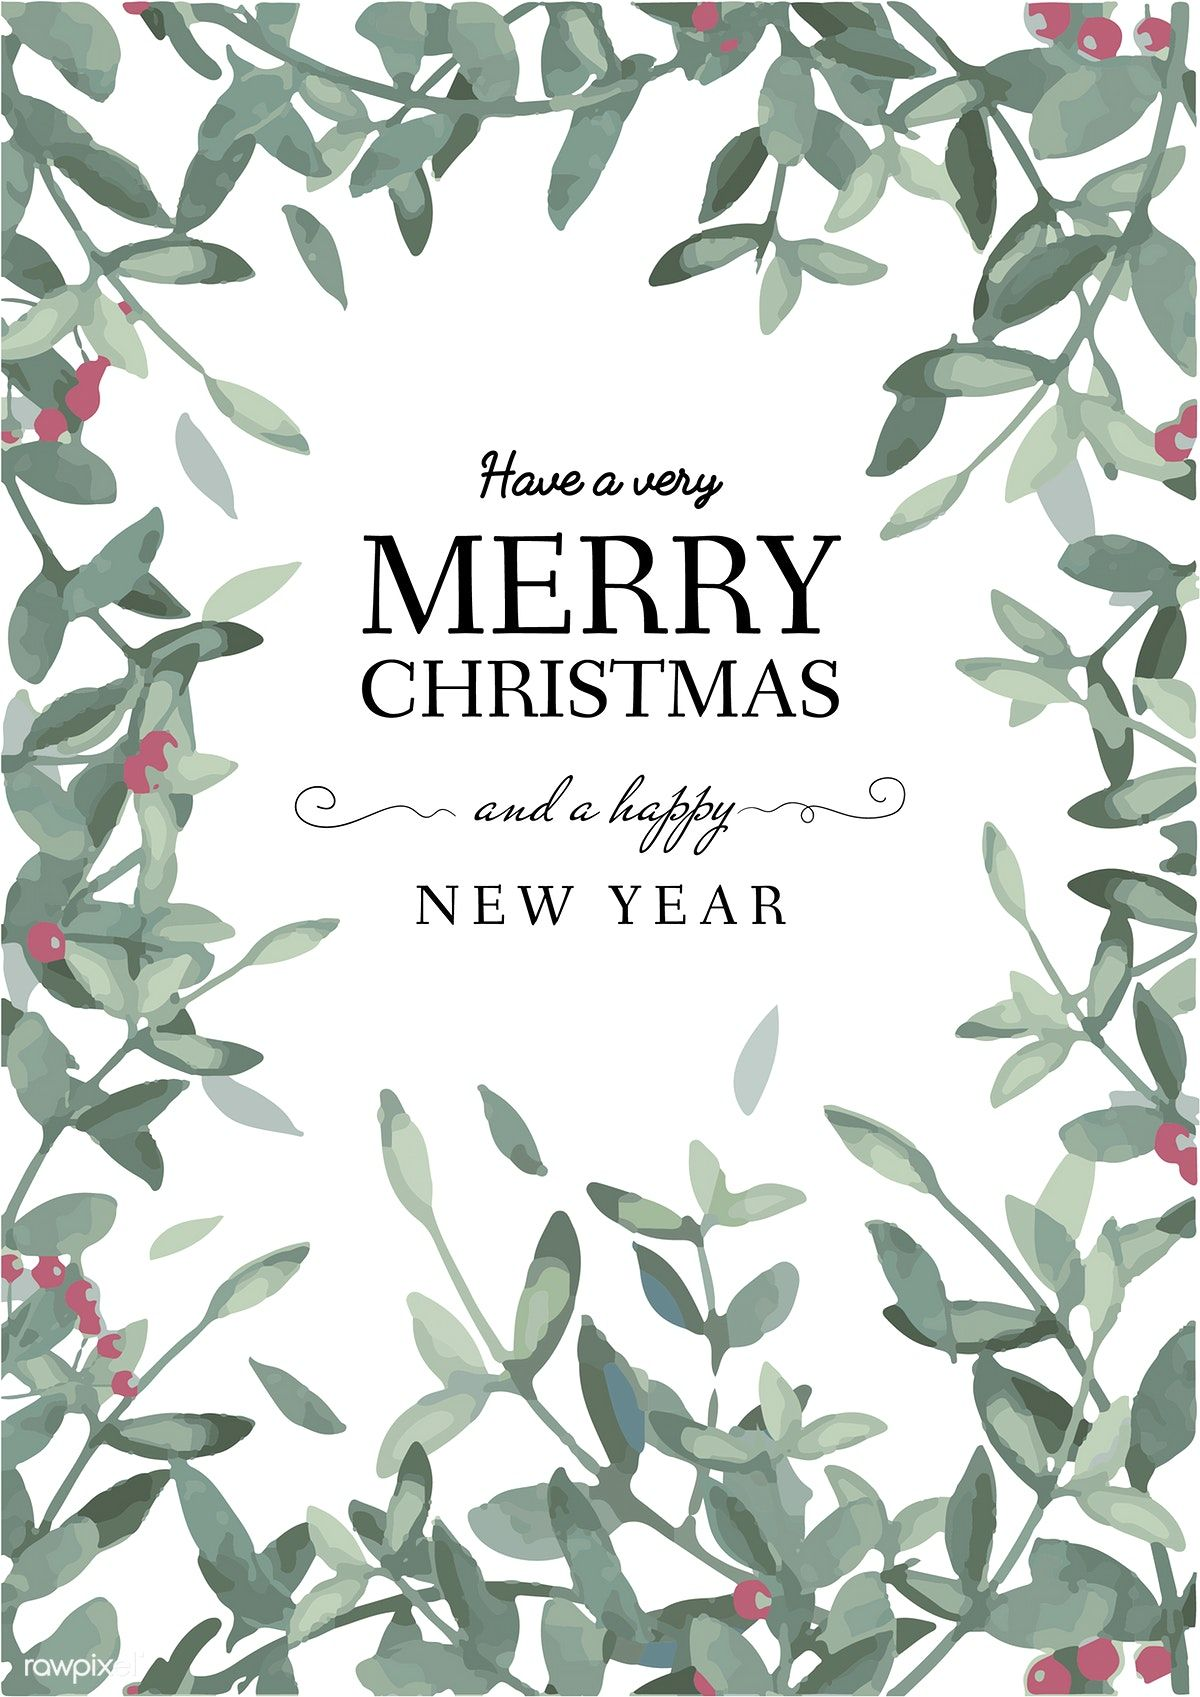 Christmas Greeting Card Template Vector Free Image By Rawpixel Com Christmas Greeting Card Template Free Christmas Greeting Cards Greeting Card Template